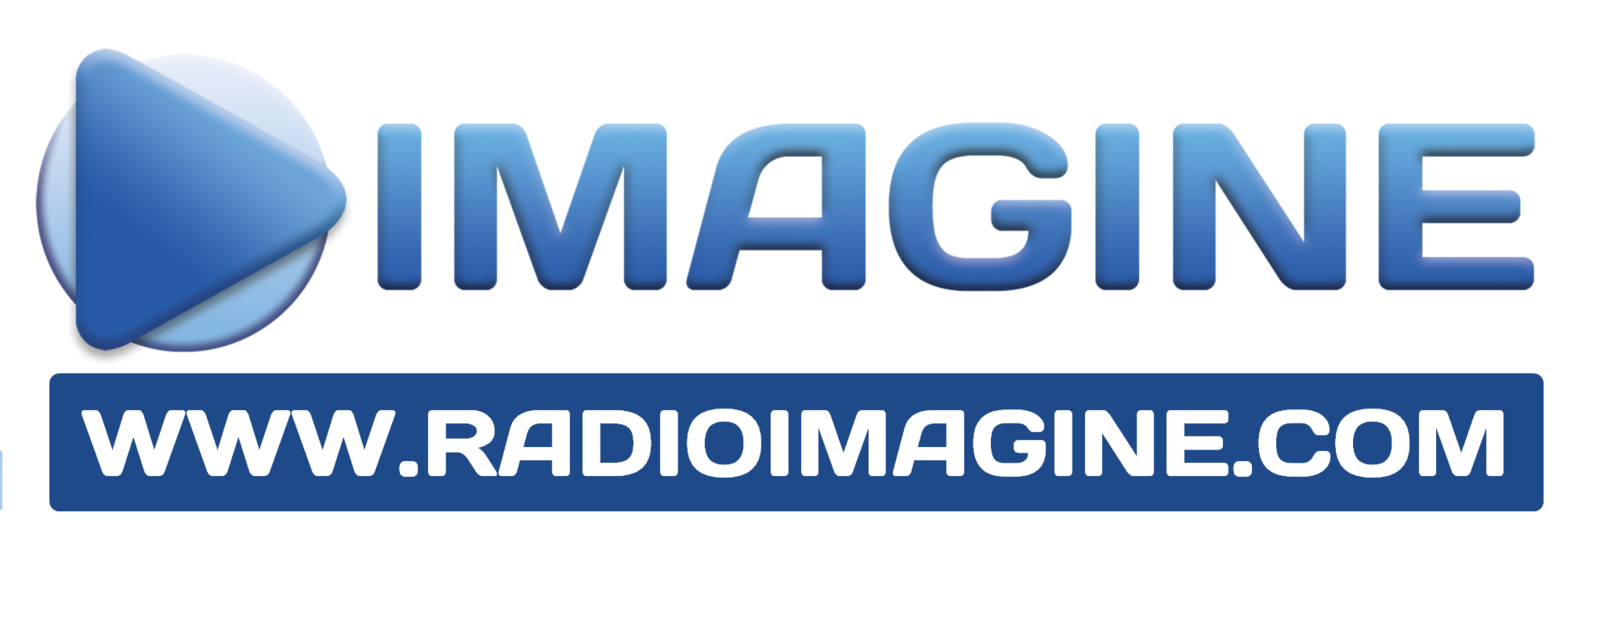 Radio Imagine - Animation : Agenda Cinema 01-06-2016